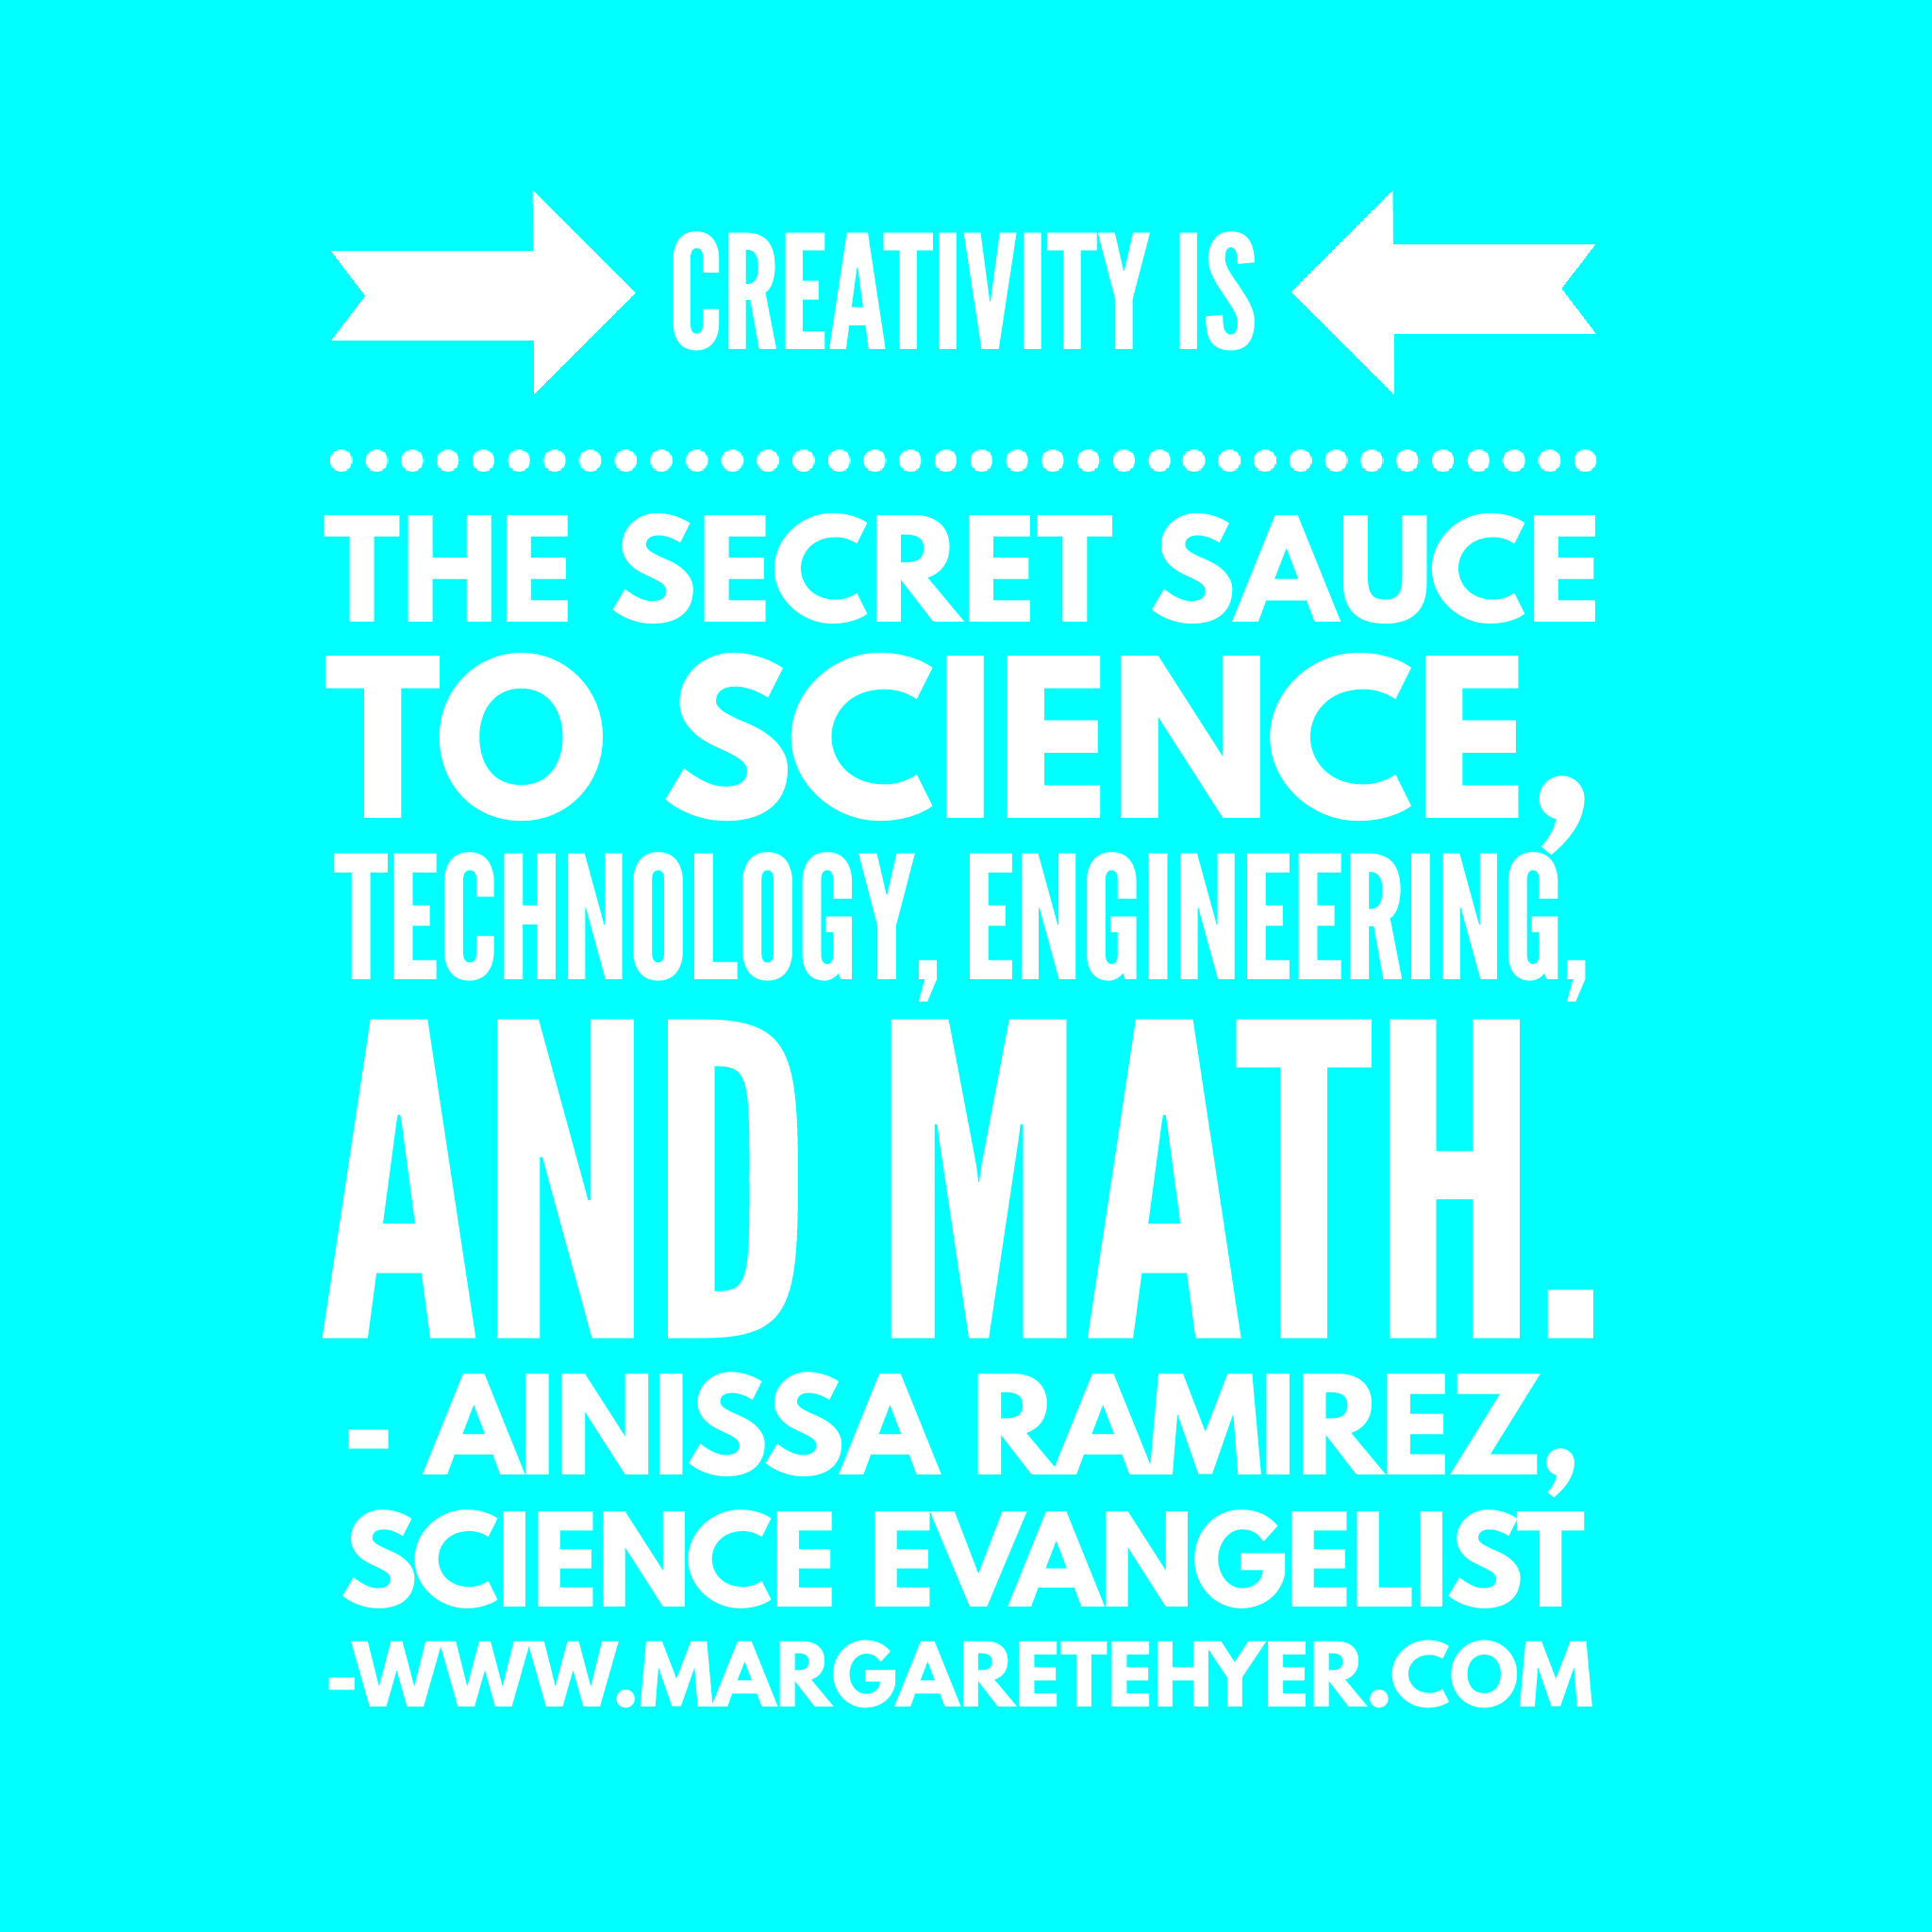 Creativity is the secret sauce to science, technology, engineering, and math. Ainissa Ramirez, Science Evangelist